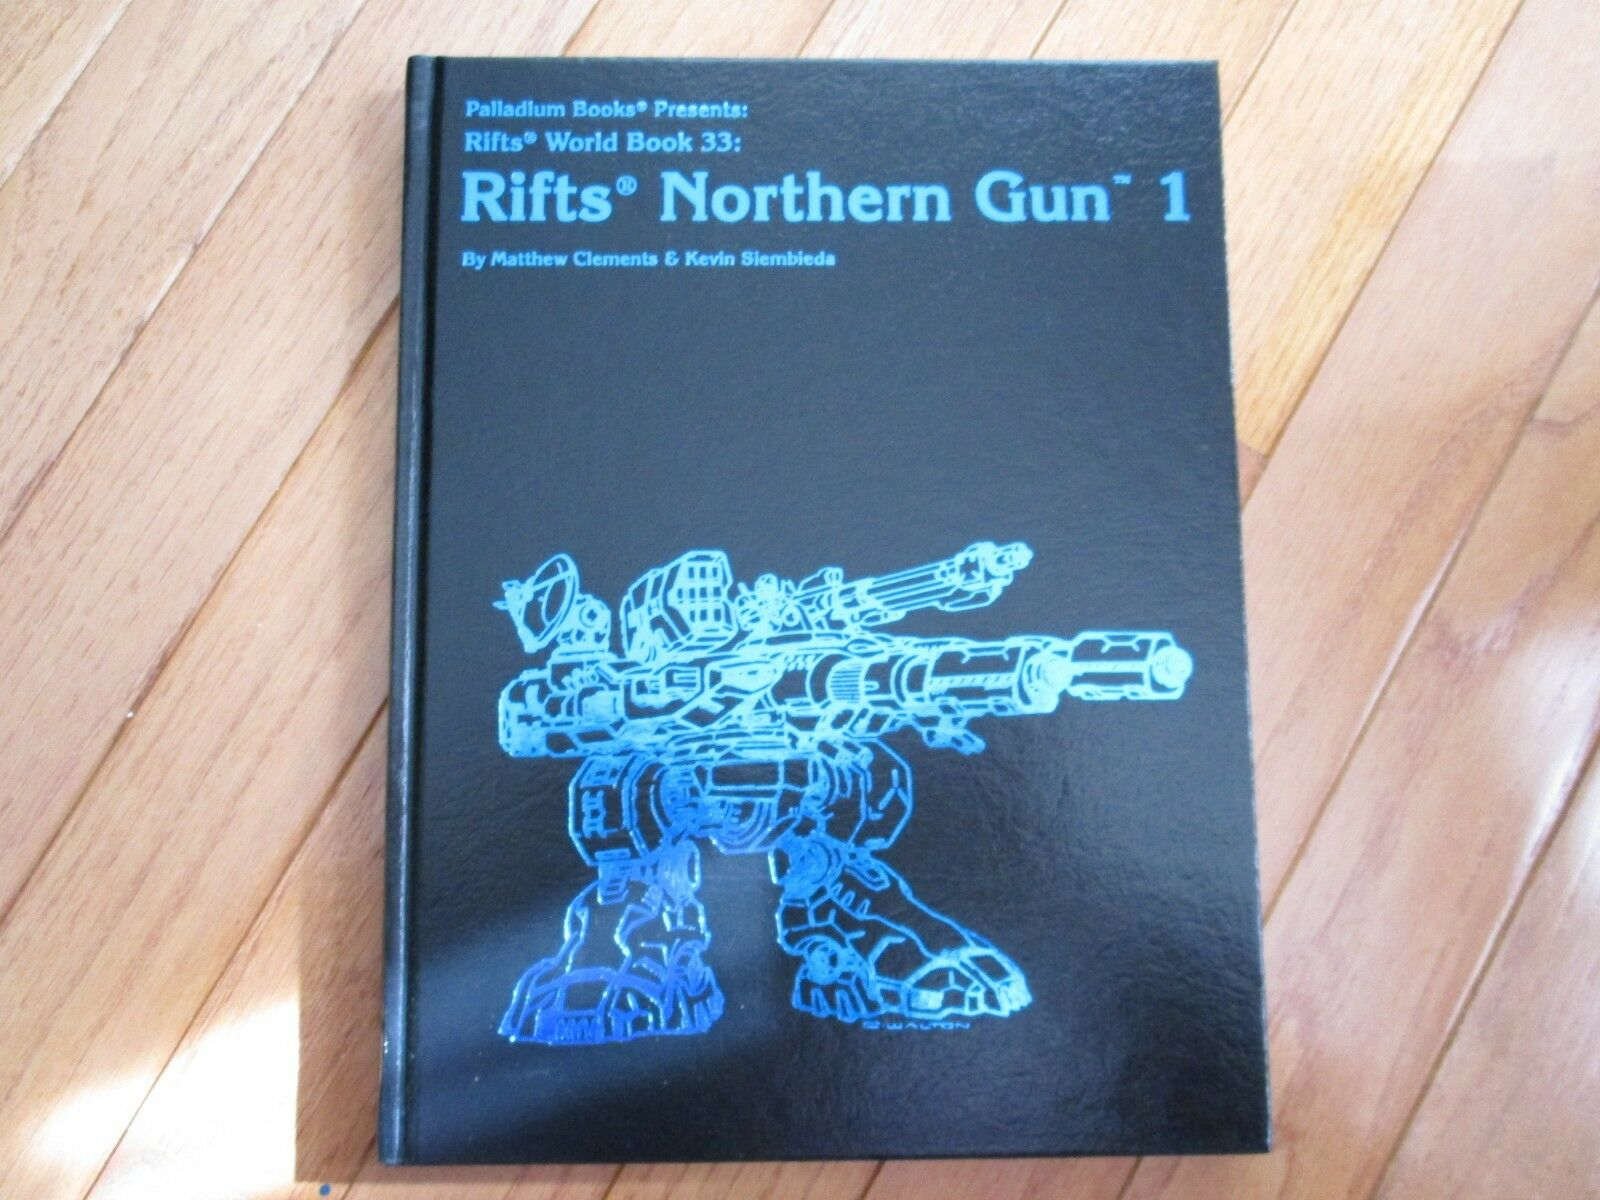 Palladium Rifts World Book 33 Rifts Northern Gun Gun Gun 1 HC Signed Printer Proof Ed 5c5014